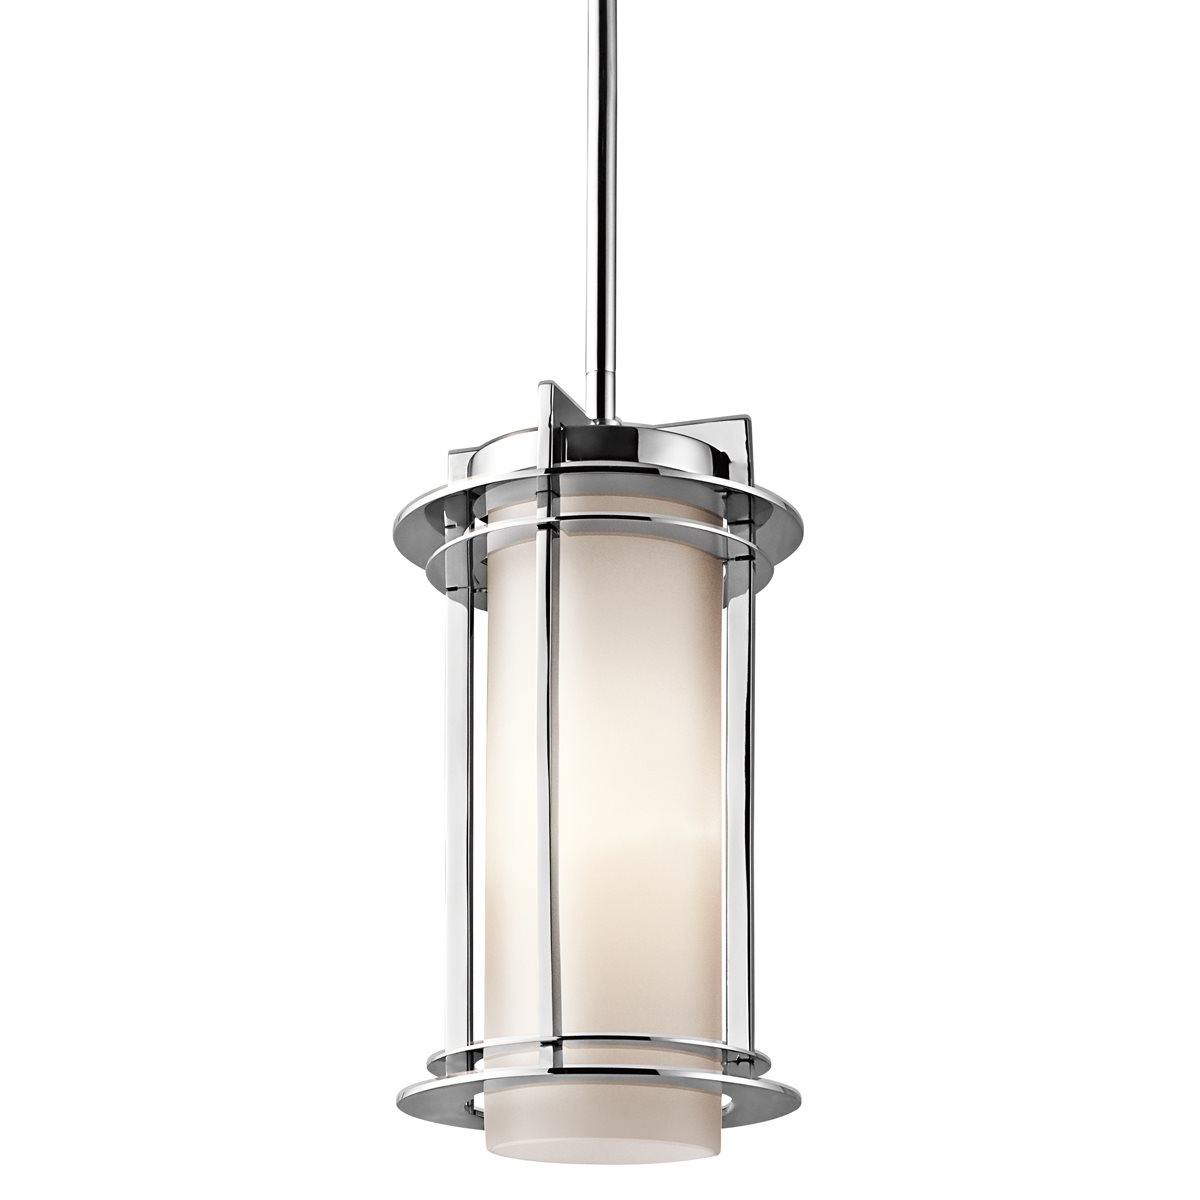 Newest Outdoor Pendant Kichler Lighting For Pendant Lighting Ideas (View 3 of 20)